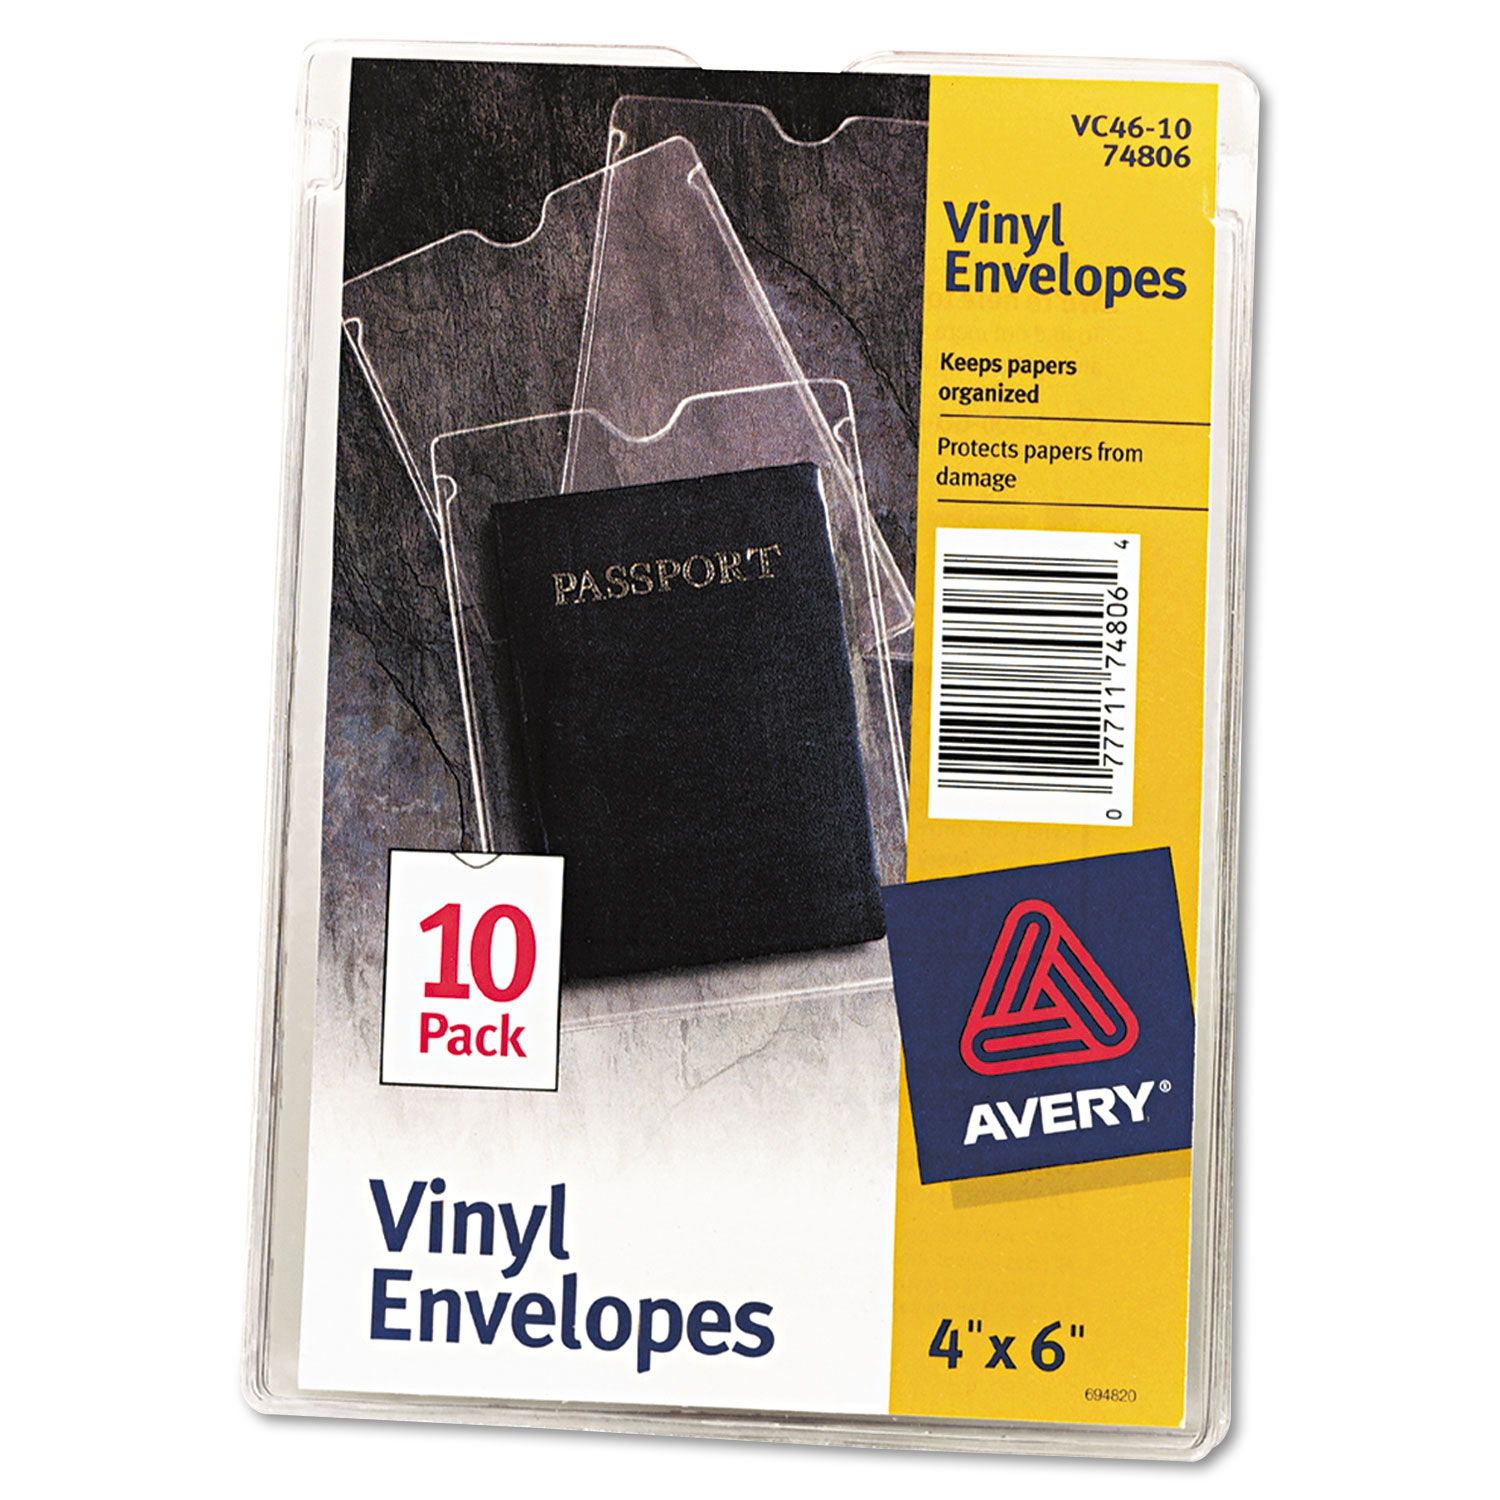 Avery Ave74806 Top-load Clear Vinyl Envelopes Withthumb Notch 4 X 6 10 Pack